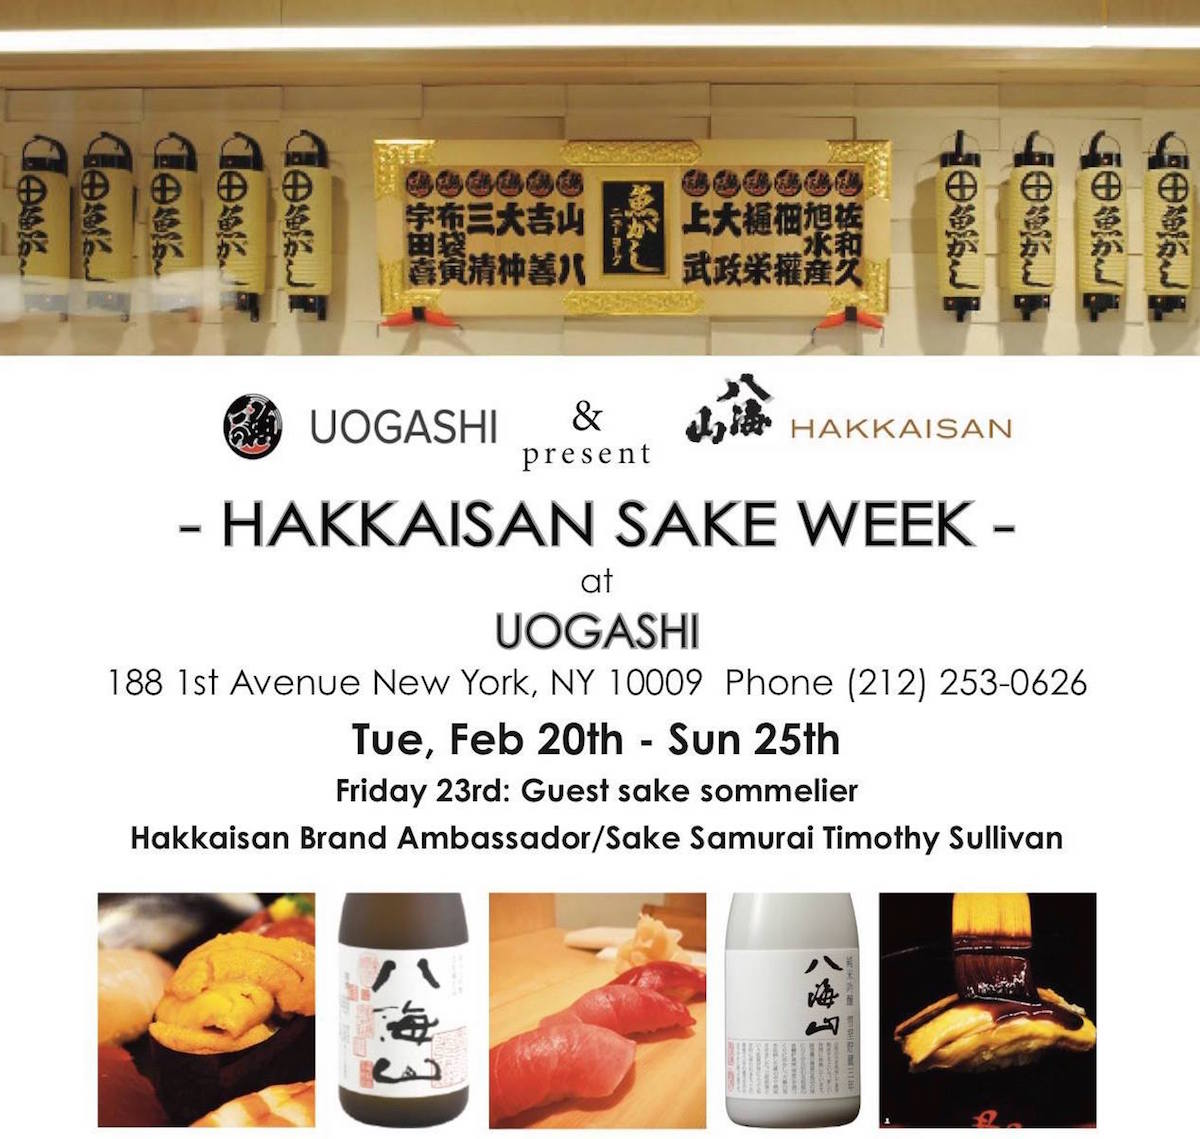 Hakkaisan Sake Week at Uogashi, Hakkaisan, sake, brewery, Uogashi, sushi, restaurant, NYC, Japan, food, Japanese cuisine